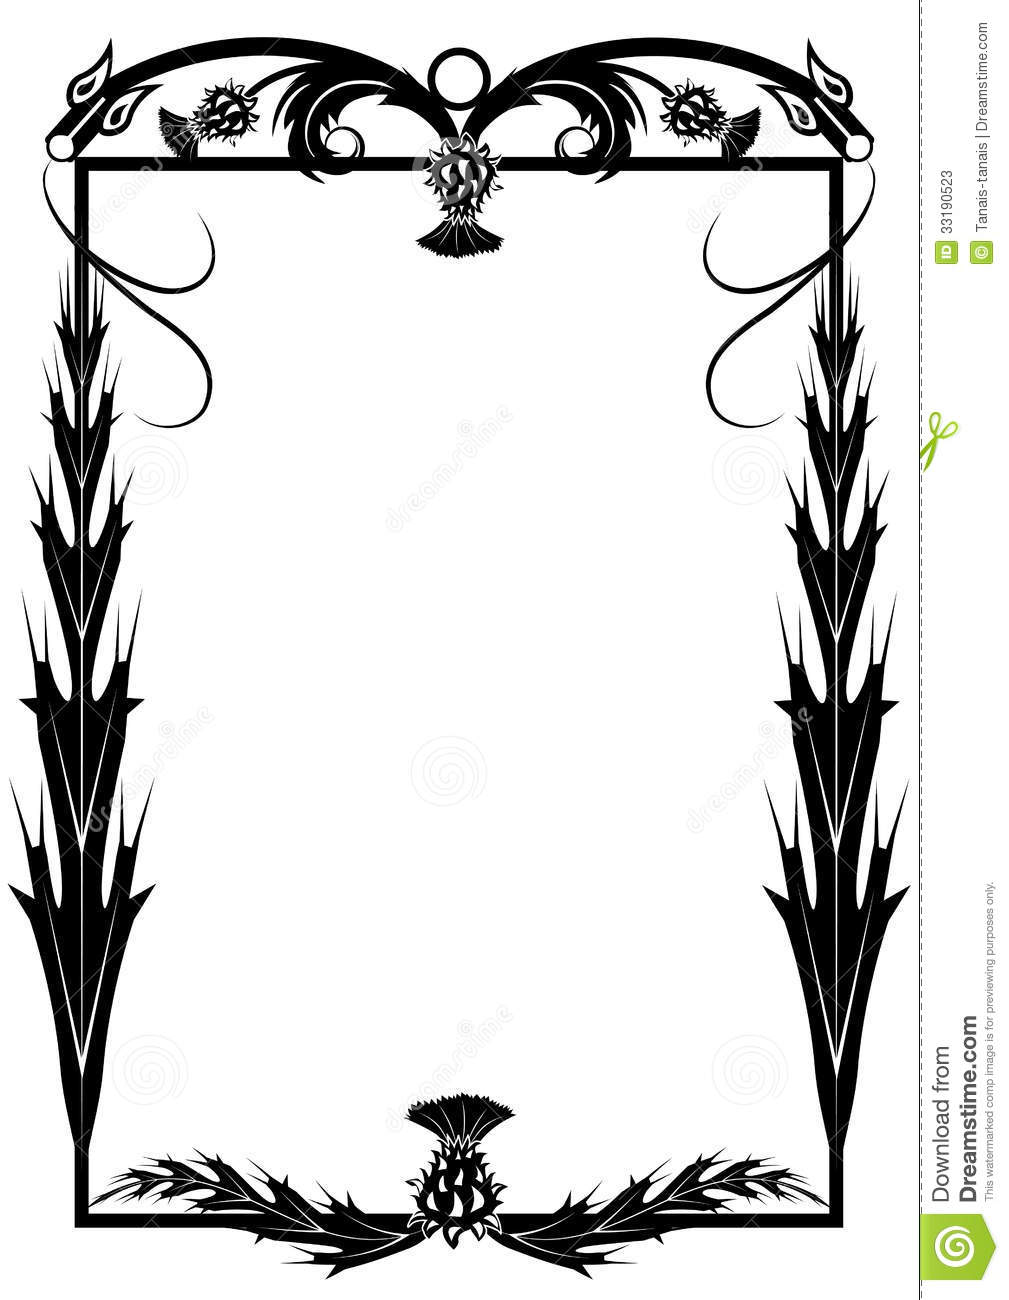 Frame With Thistle And Dragons Stock Vector - Illustration of dragon ...